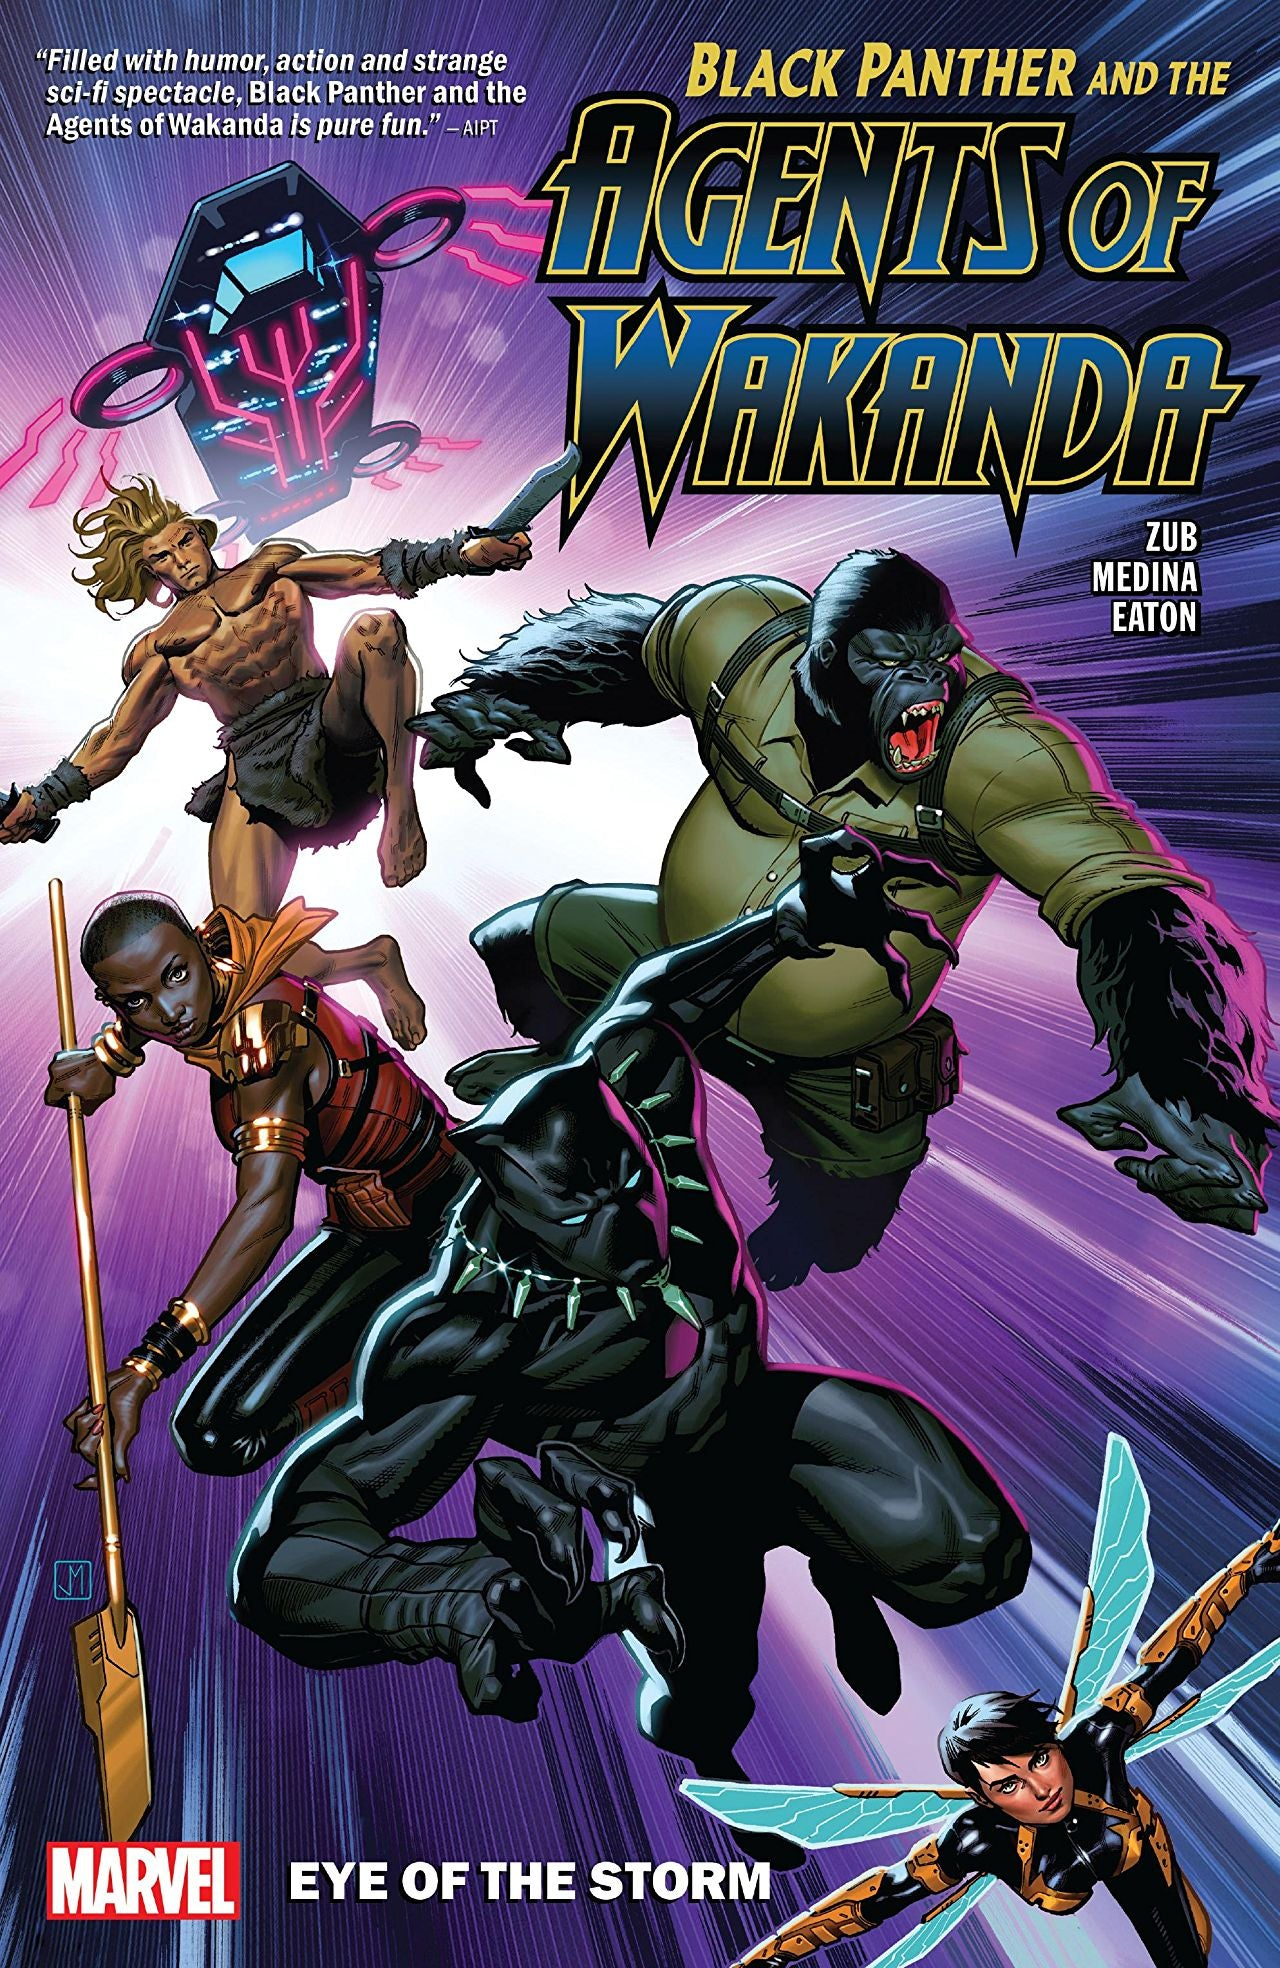 Black Panther and the Agents of Wakanda (2019) Volume 1: Eye of the Storm